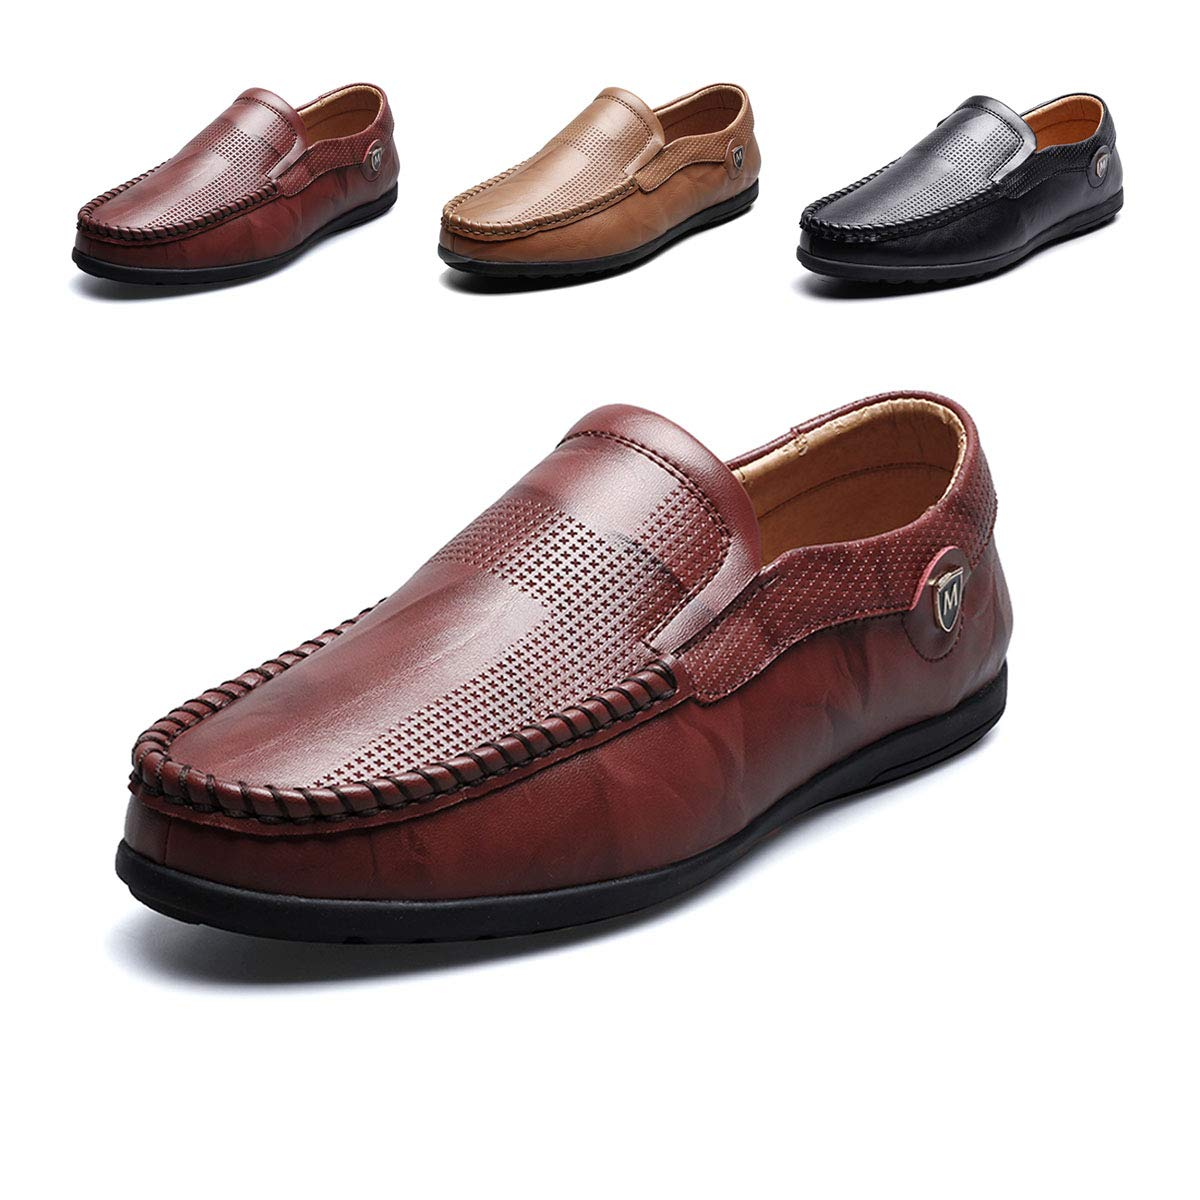 HYF Mens Oxford Shoes Boat Shoes Breathable Lined Loafers Flat Upper Hand-made Leather Shoes Business Shoes for Men